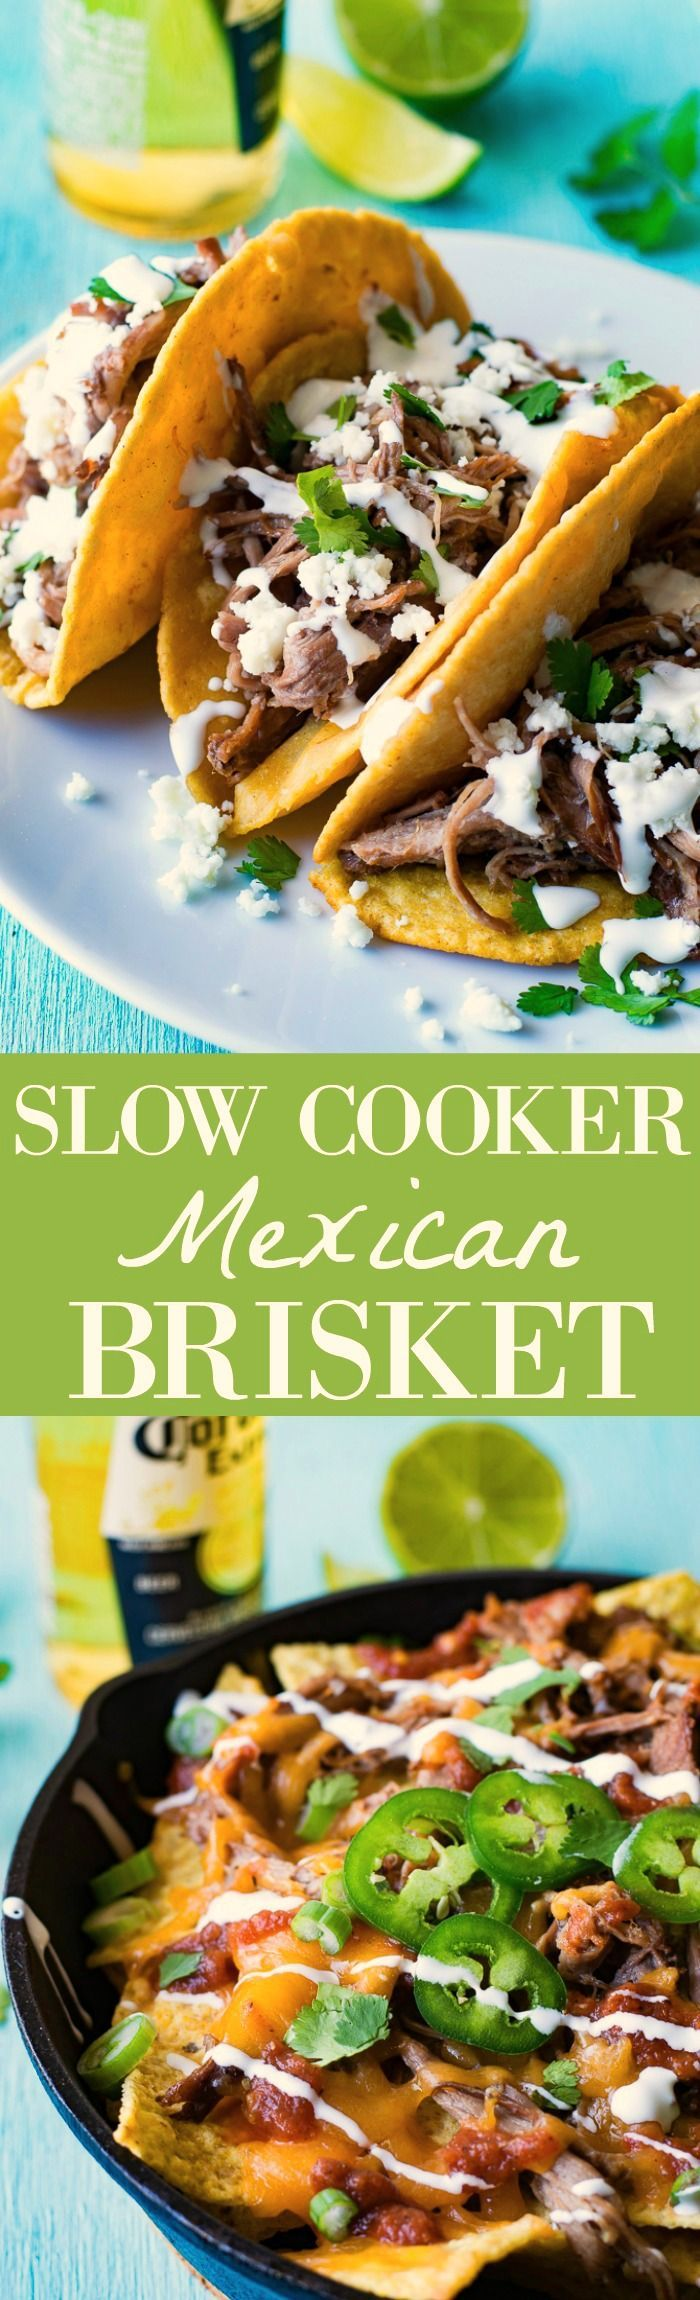 Slow Cooker Mexican Brisket http://houseofyumm.com/slow-cooker-mexican-brisket/